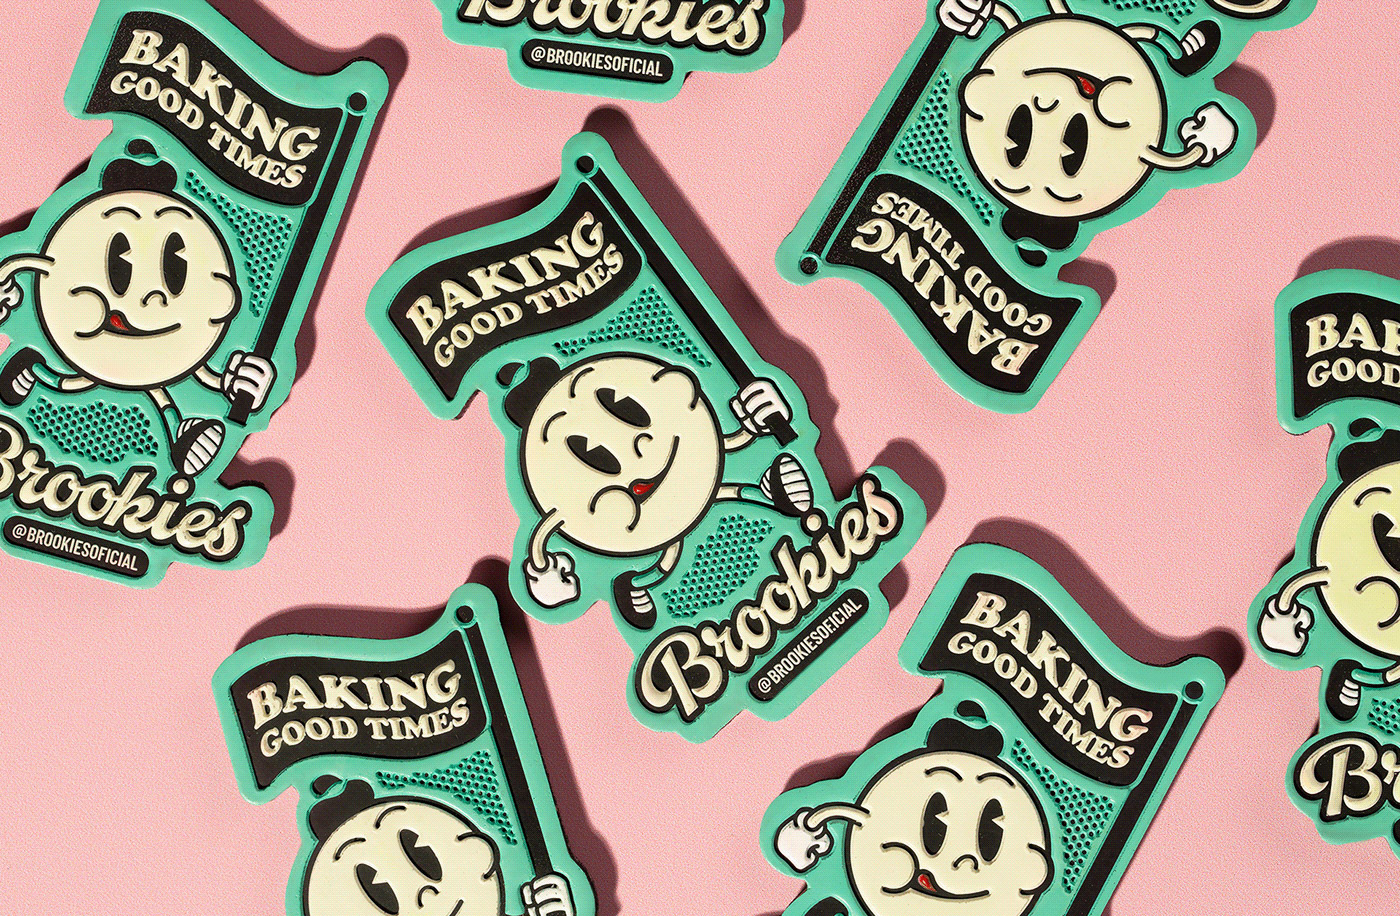 Brand and packaging design by Blank Design Studio for Brookies Cookies & Co.